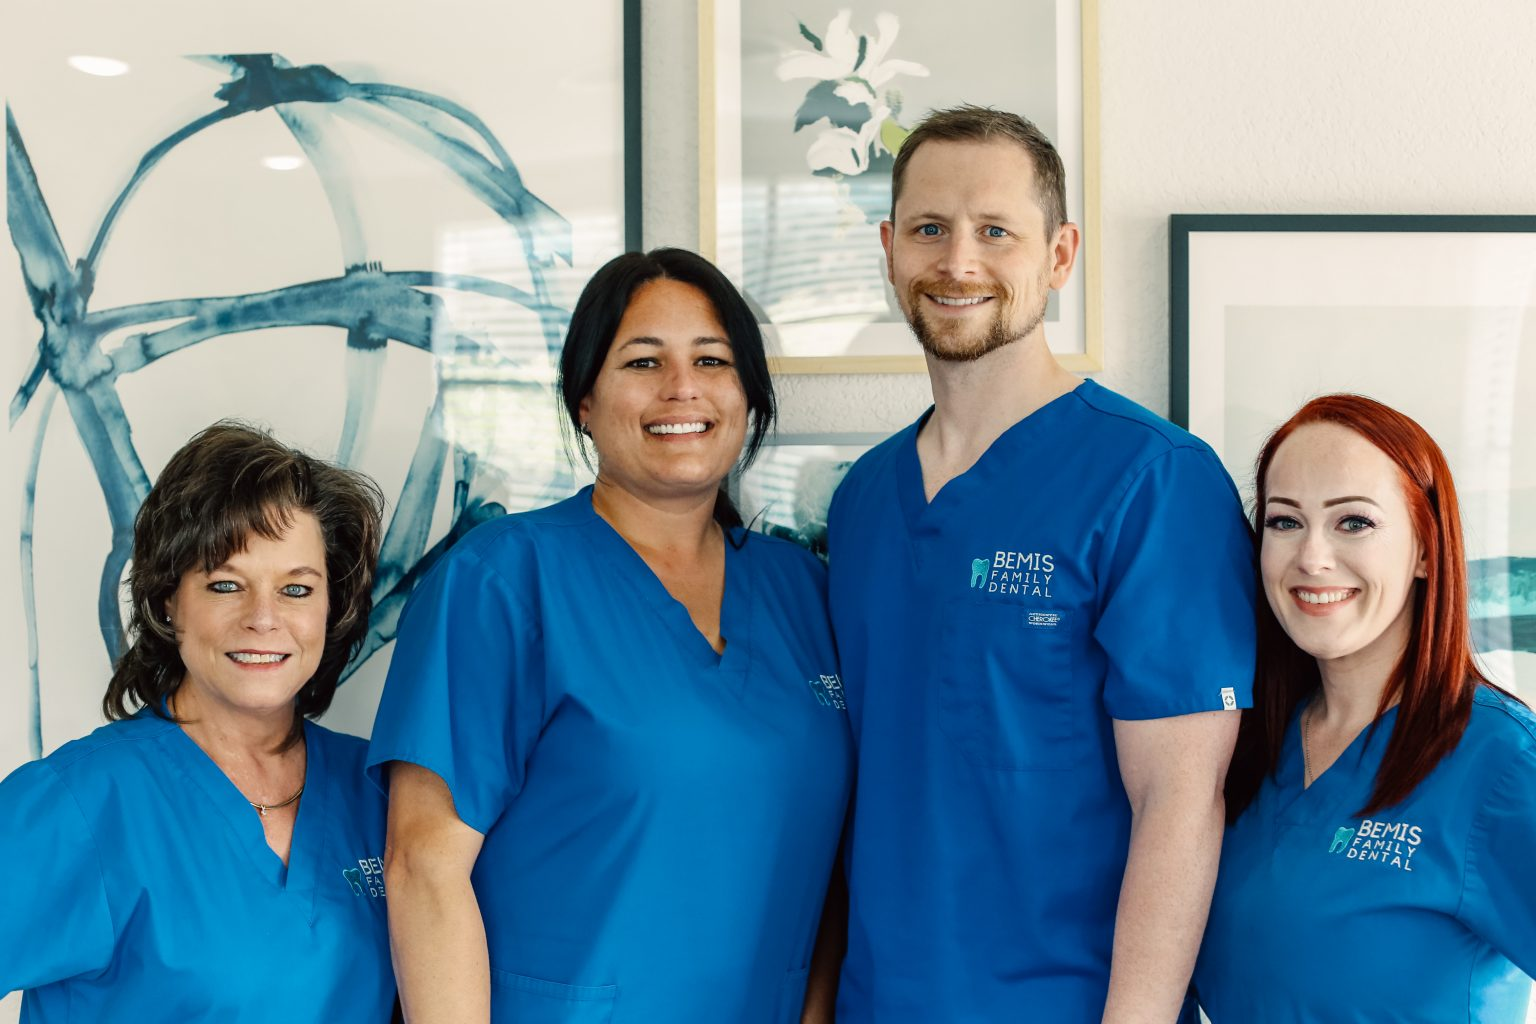 Bemis Family Dental